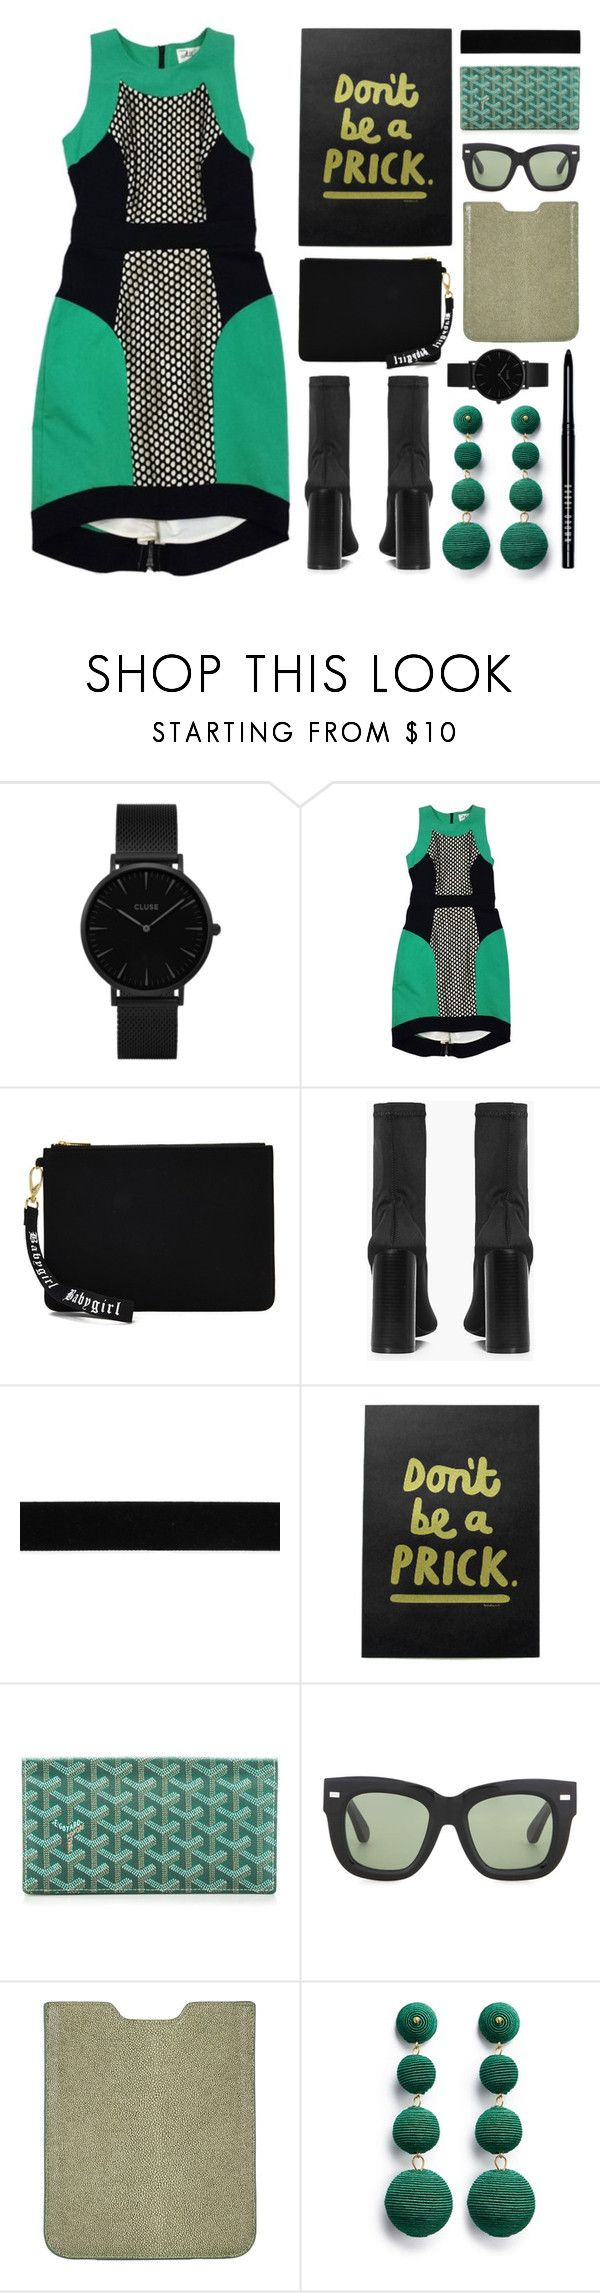 """""""moderno"""" by foundlostme ❤ liked on Polyvore featuring CLUSE, Milly, Forever 21, Boohoo, Goyard, Acne Studios, Barneys New York, Kenneth Jay Lane, Bobbi Brown Cosmetics and modern"""